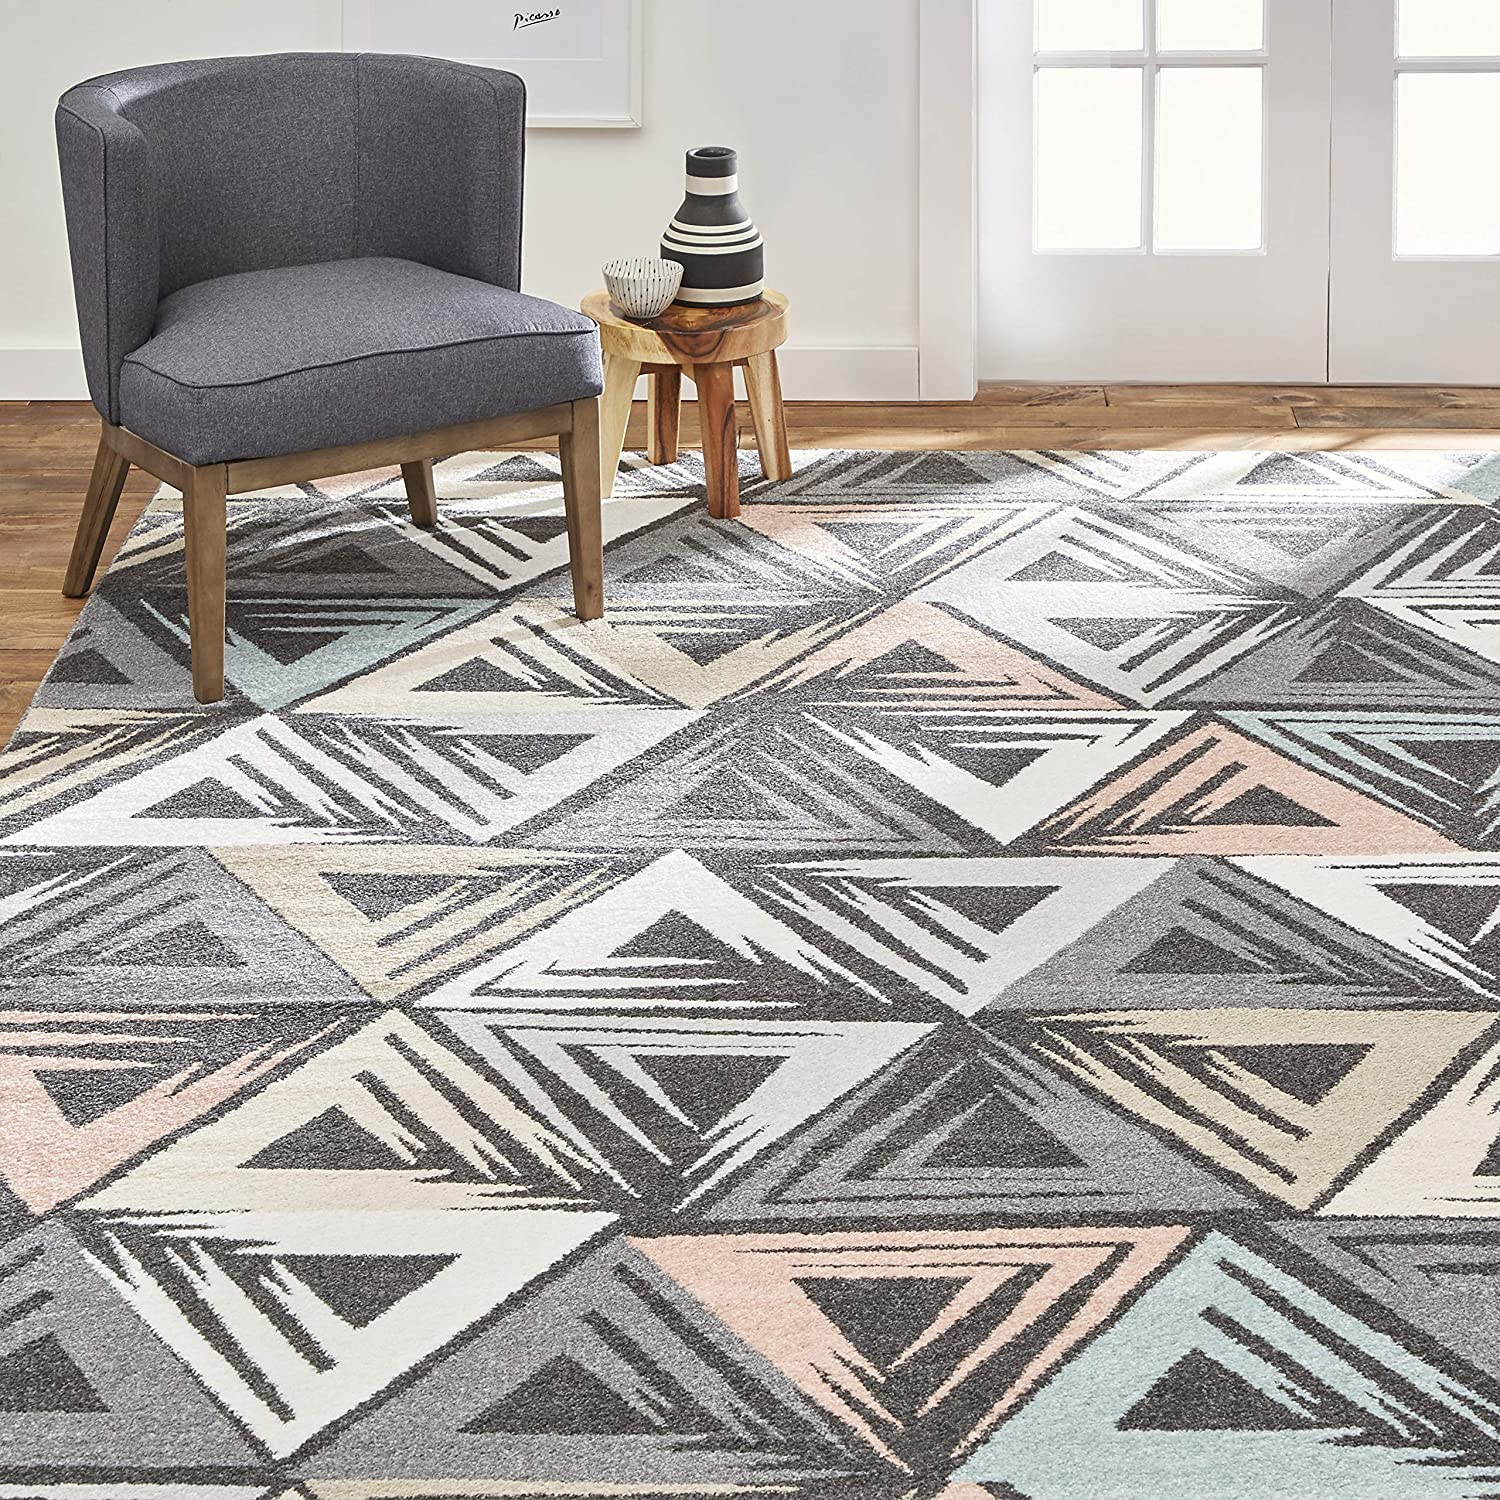 Home Dynamix Area Rug Ivory Charcoal Excellence Rectangle 3'11